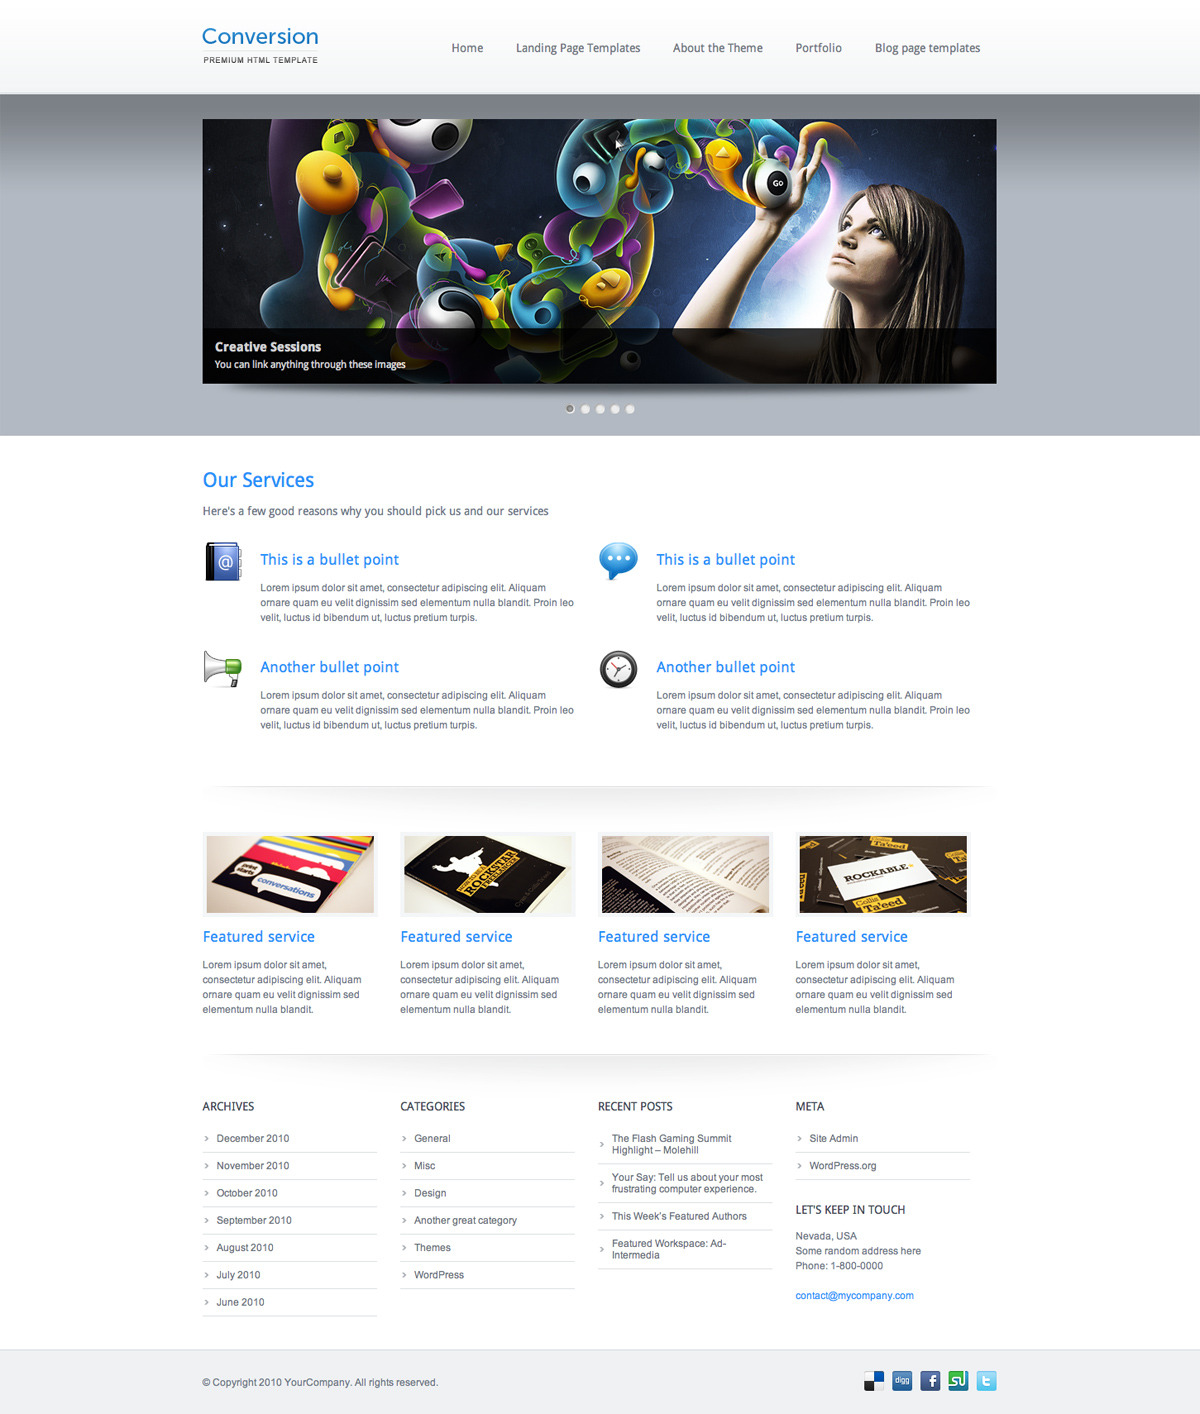 Conversion - Premium HTML Template - Conversion - Premium HTML Template